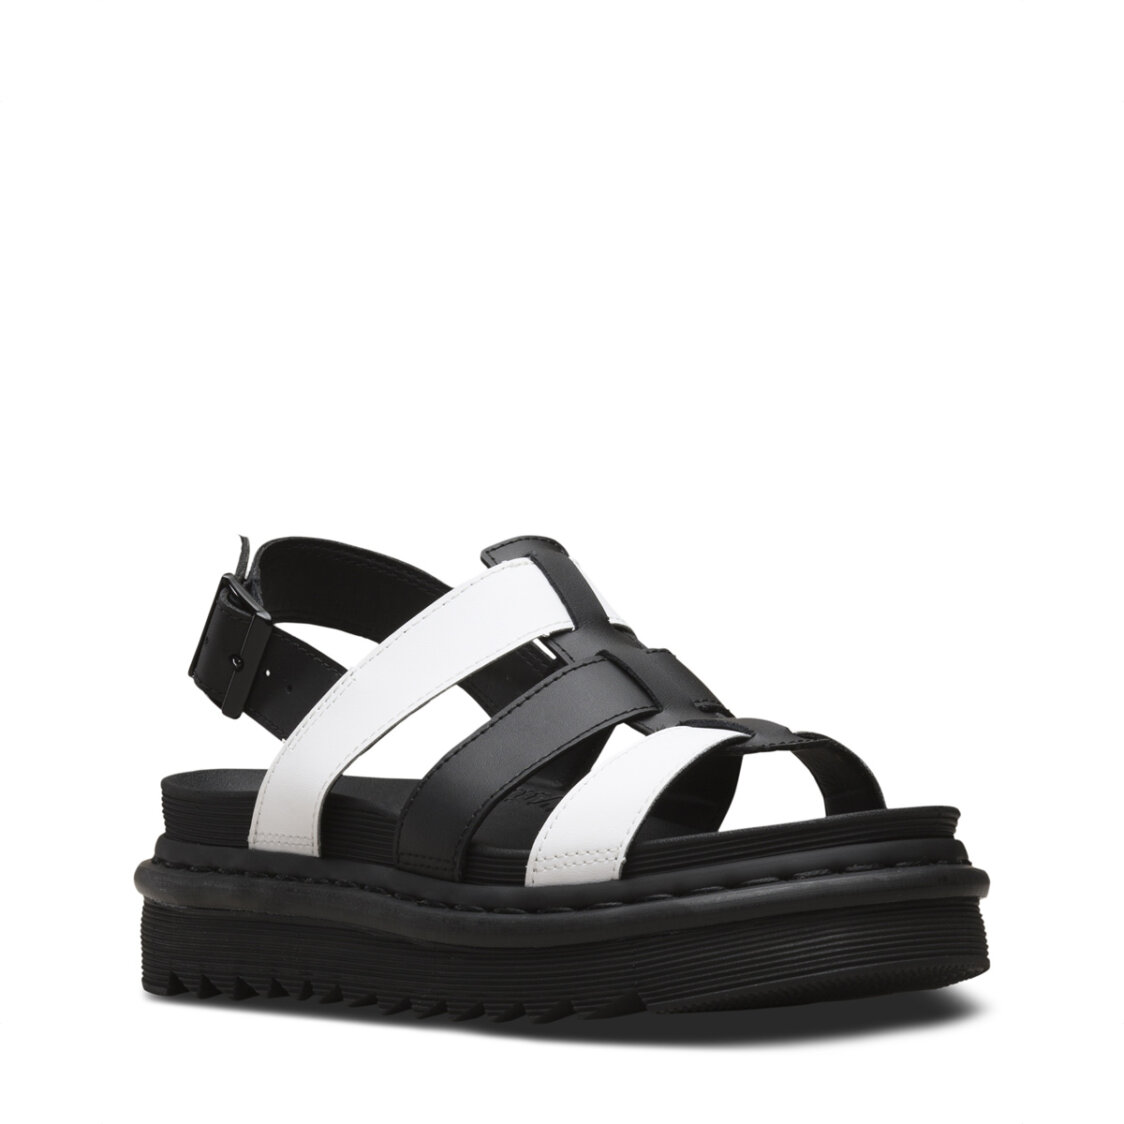 Dr Marten Yelena Hydro Leather Sandals